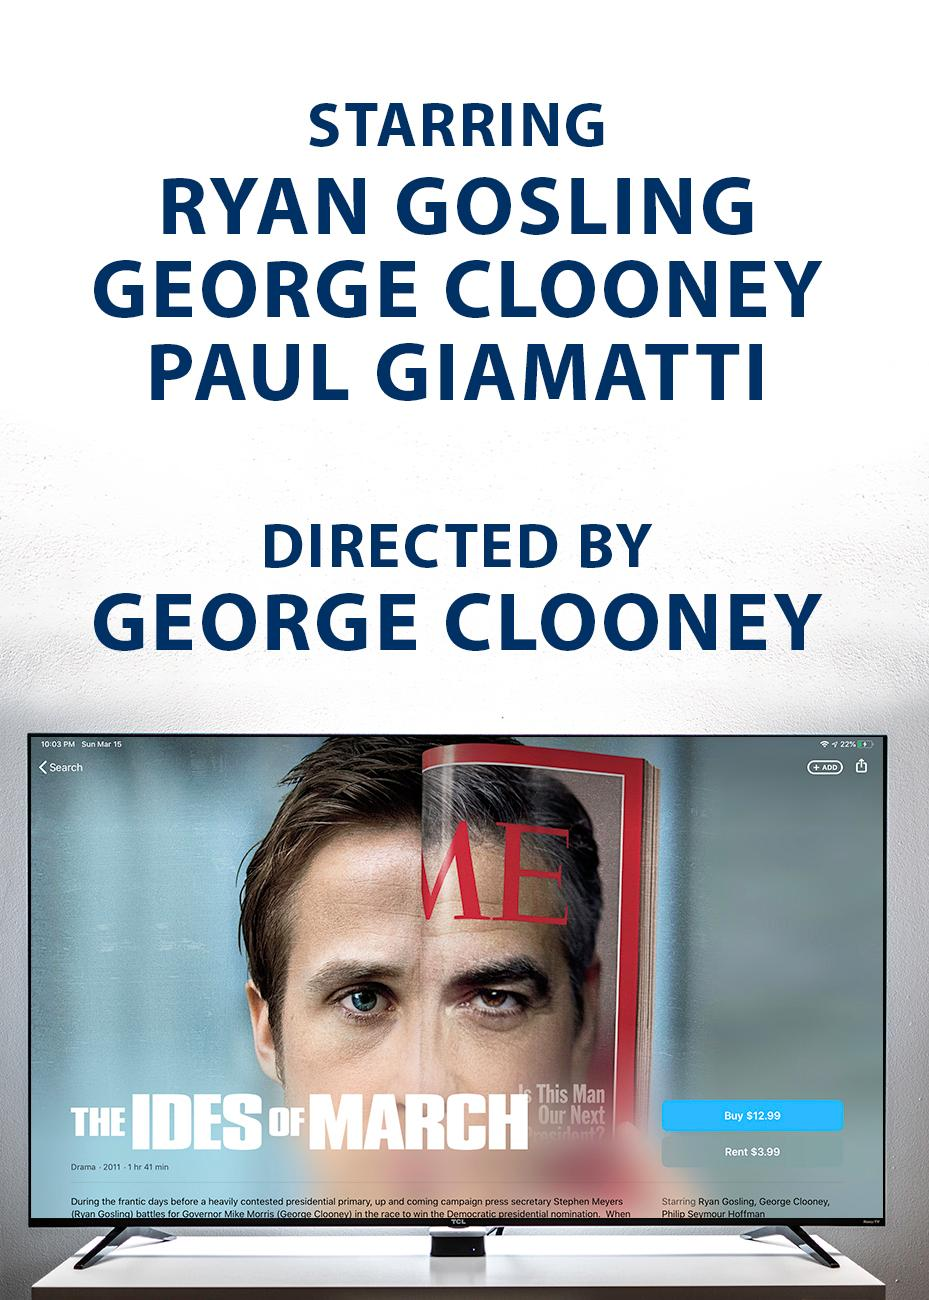 "STORY SUMMARY: (From Google) ""As Ohio's Democratic primary nears, charming Gov. Mike Morris (George Clooney) seems a shoo-in for the nomination over his opponent, Sen. Pullman (Michael Mantell). Morris' idealistic press secretary, Stephen Meyers (Ryan Gosling), believes in his candidate's integrity and the democratic process. But Meyers' meeting with Pullman's campaign manager (Paul Giamatti) and a dalliance with a young intern (Evan Rachel Wood) set in motion events that threaten Morris' election chances."" / PRICE: Rent for $3.99 / Image: iTunes, Phil Armstrong // Published: 3.16.20"